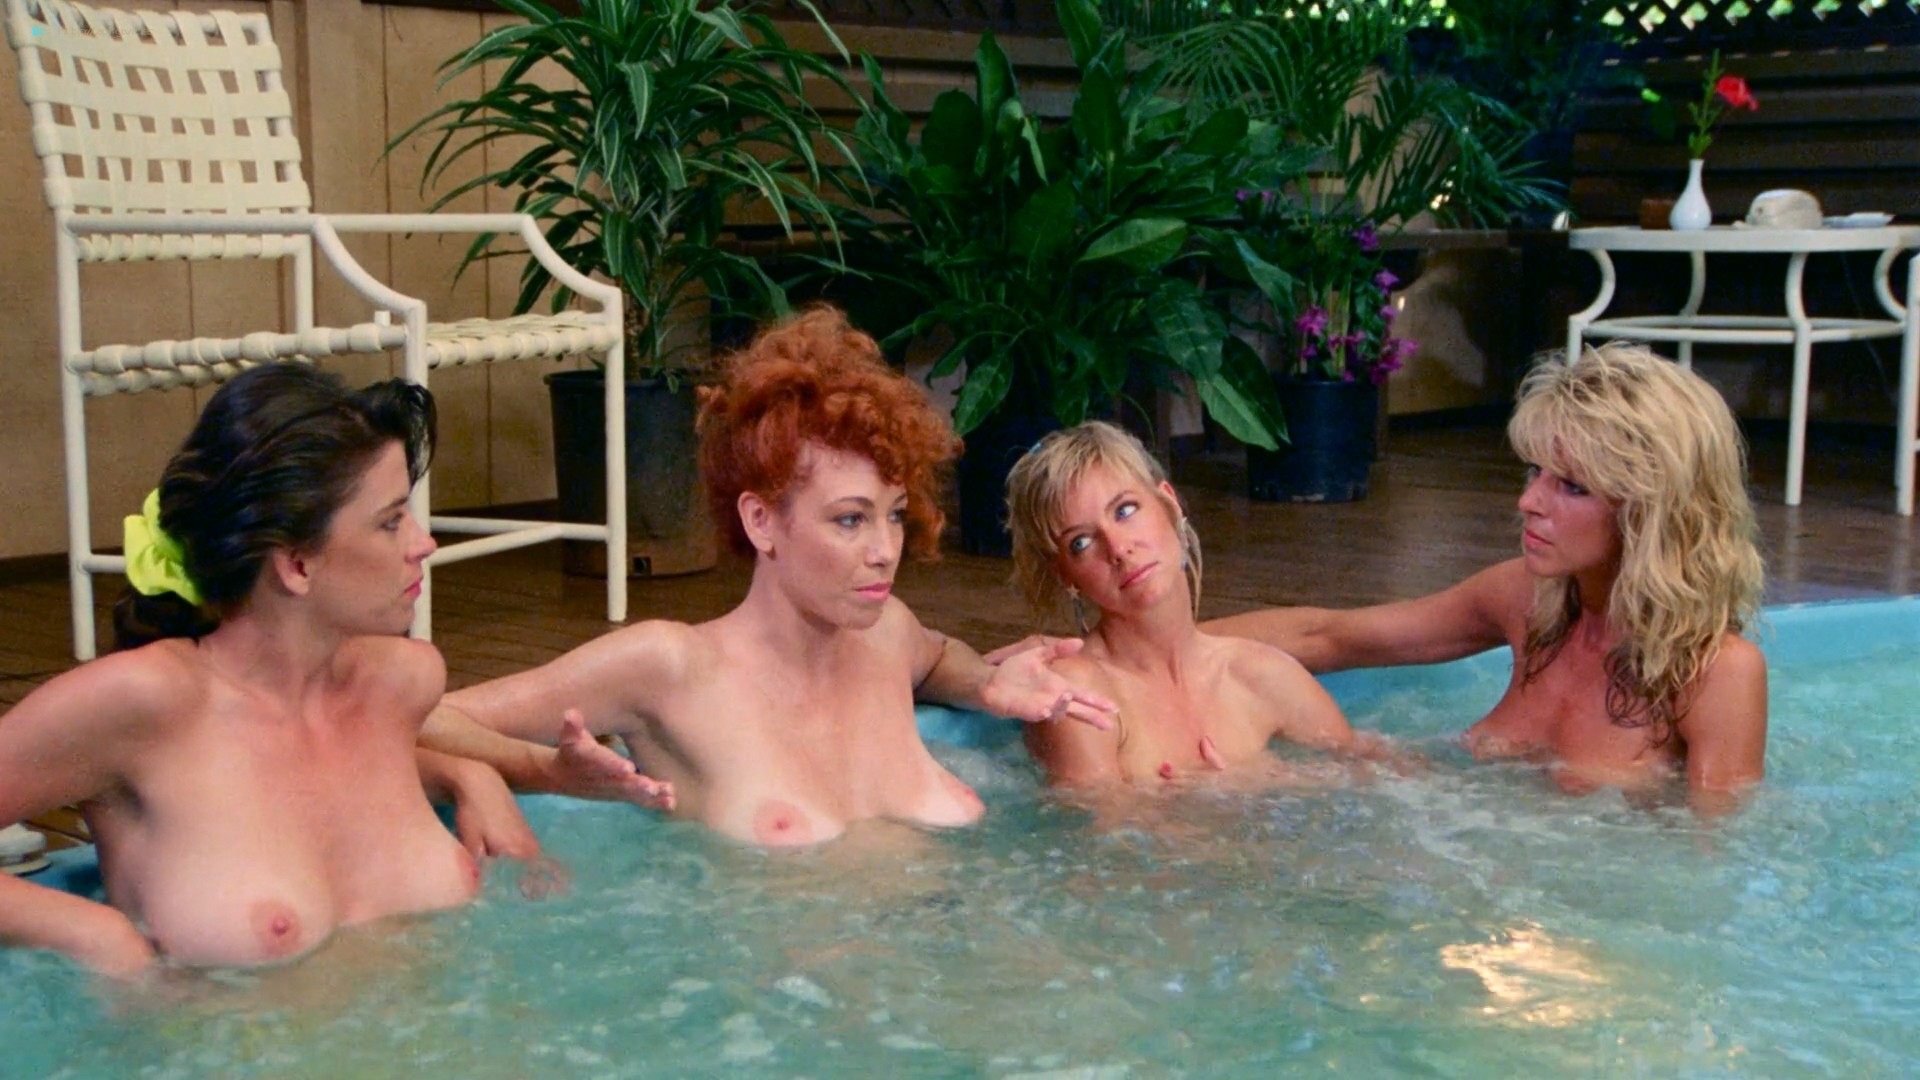 Hope Marie Carlton nude bush Teri Weigel sex in the car Maxine Wasa and other's nude - Savage Beach (1989) HD 1080p BluRay (47)